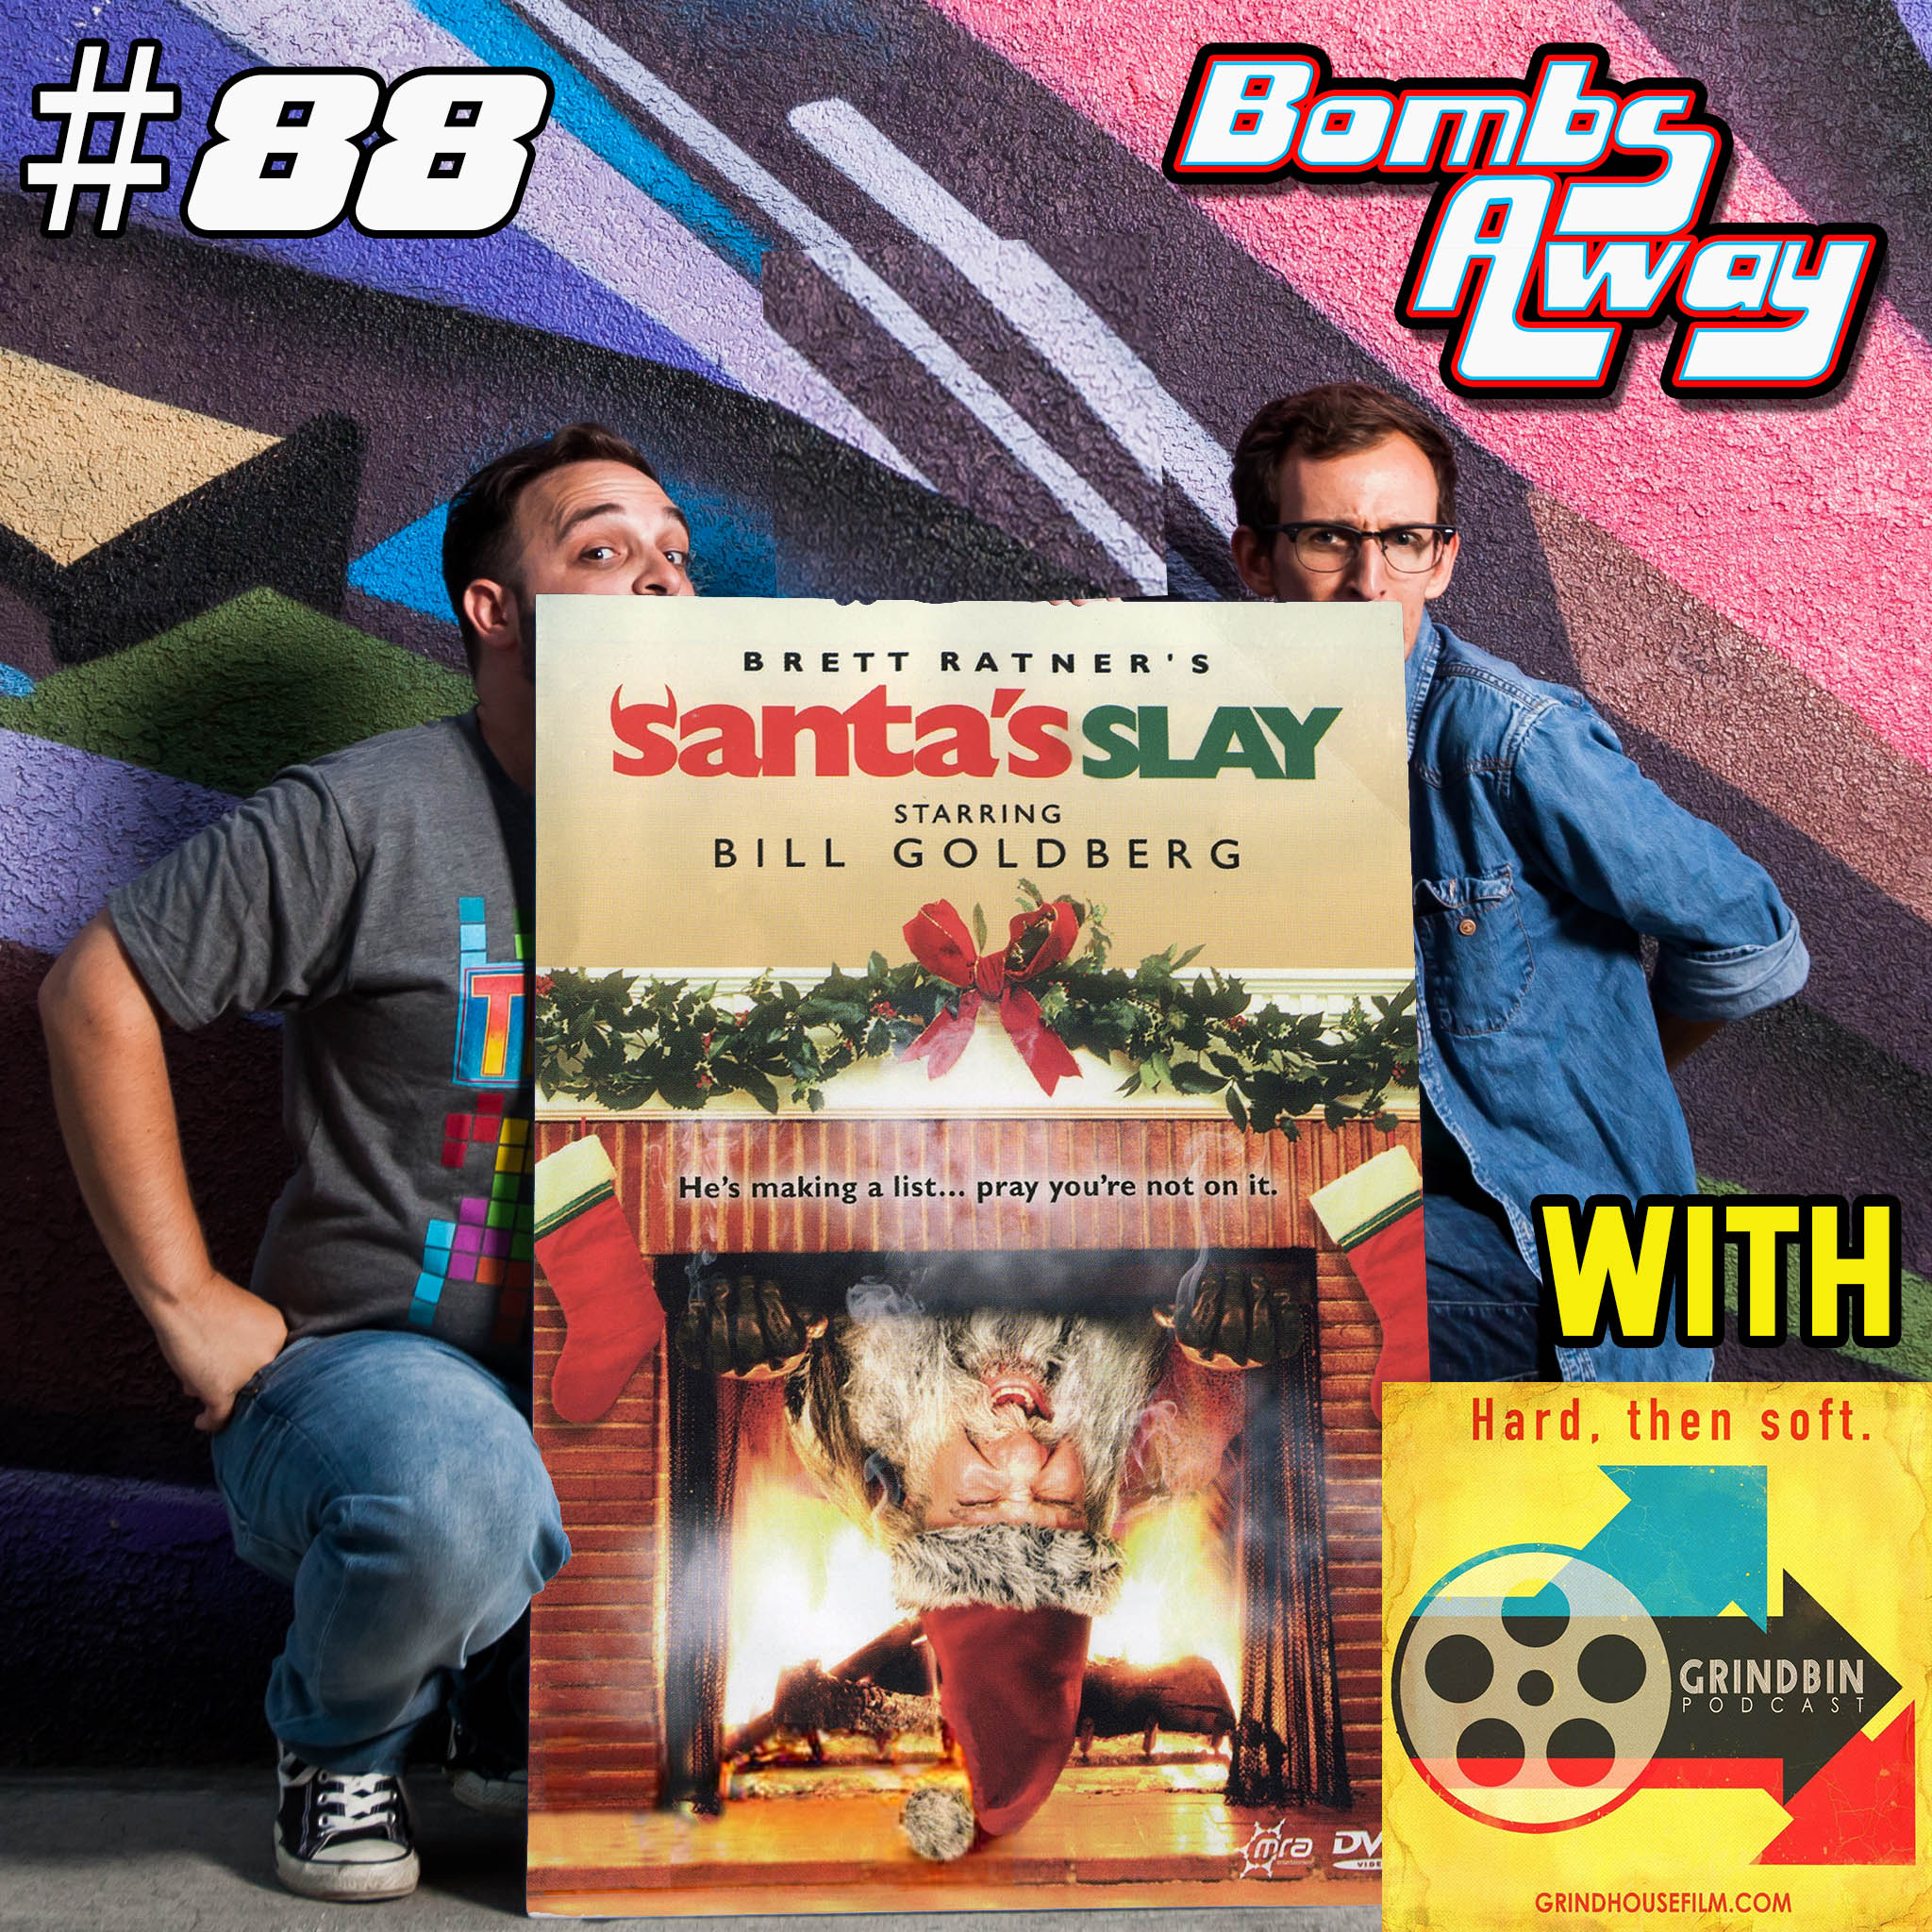 Christmas 2018 - Episode 88 - Santa's Slay (2005) [w/ The Grindbin Podcast]